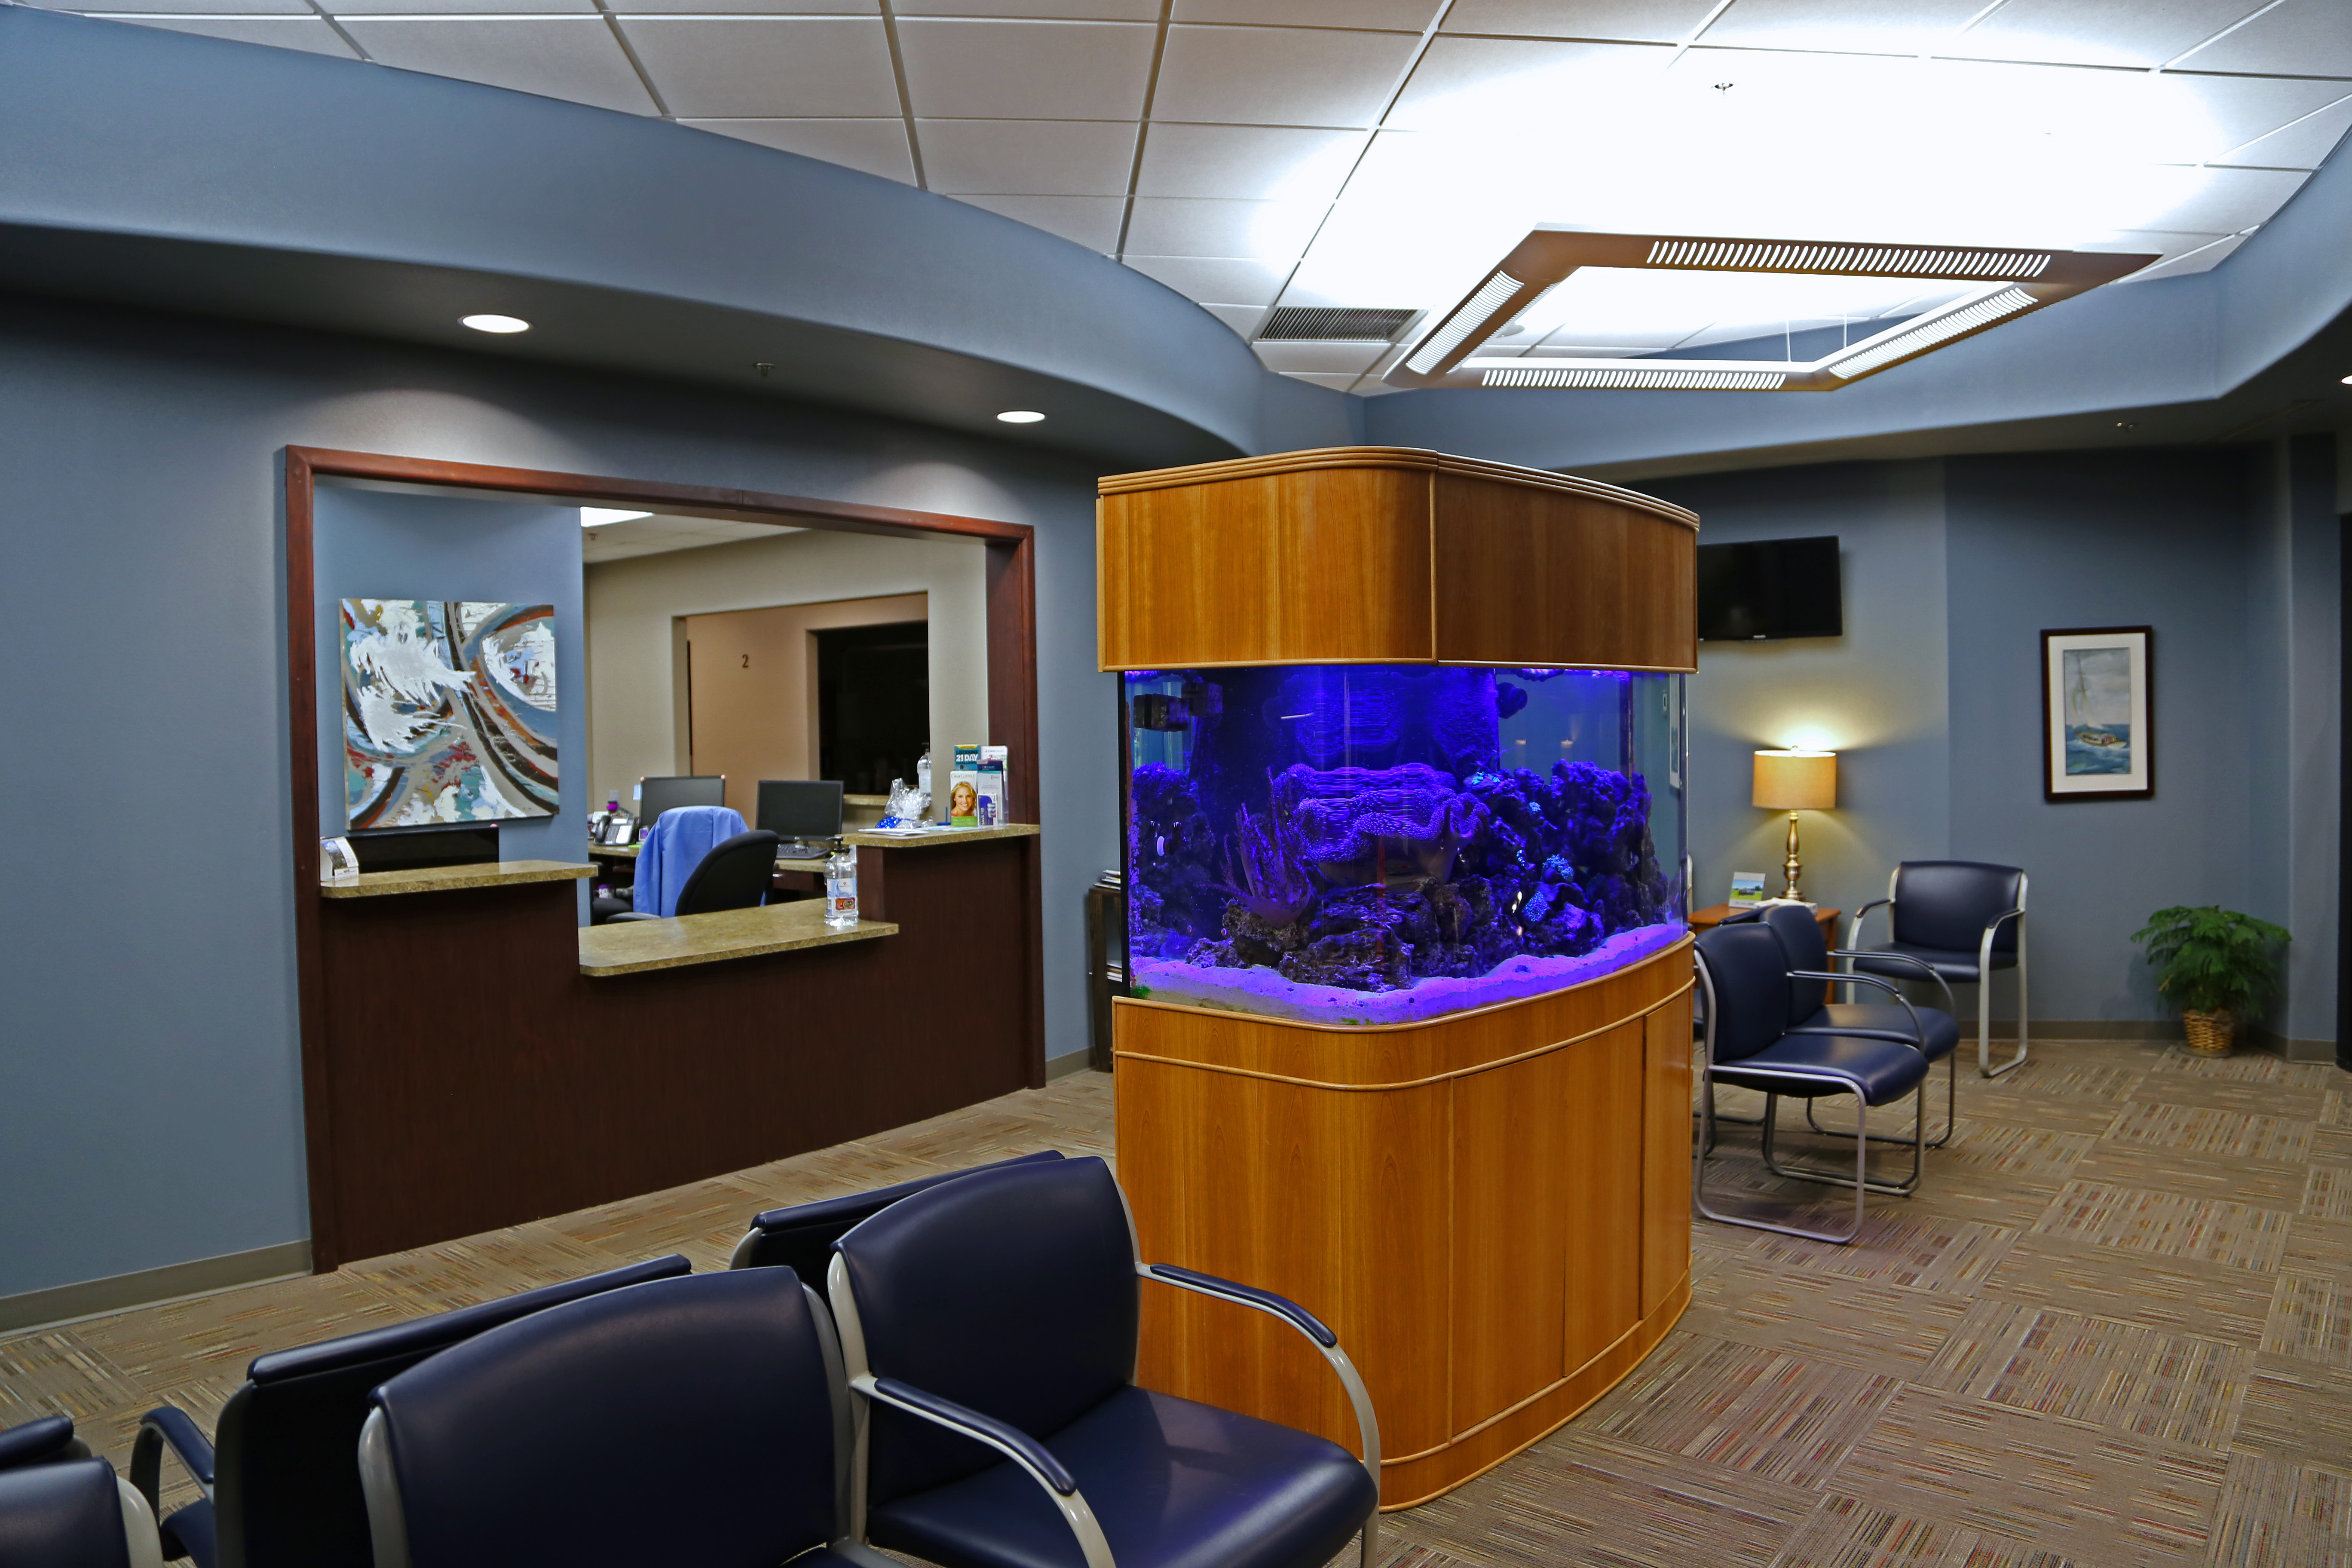 Fish tank for the office - Our Front Office